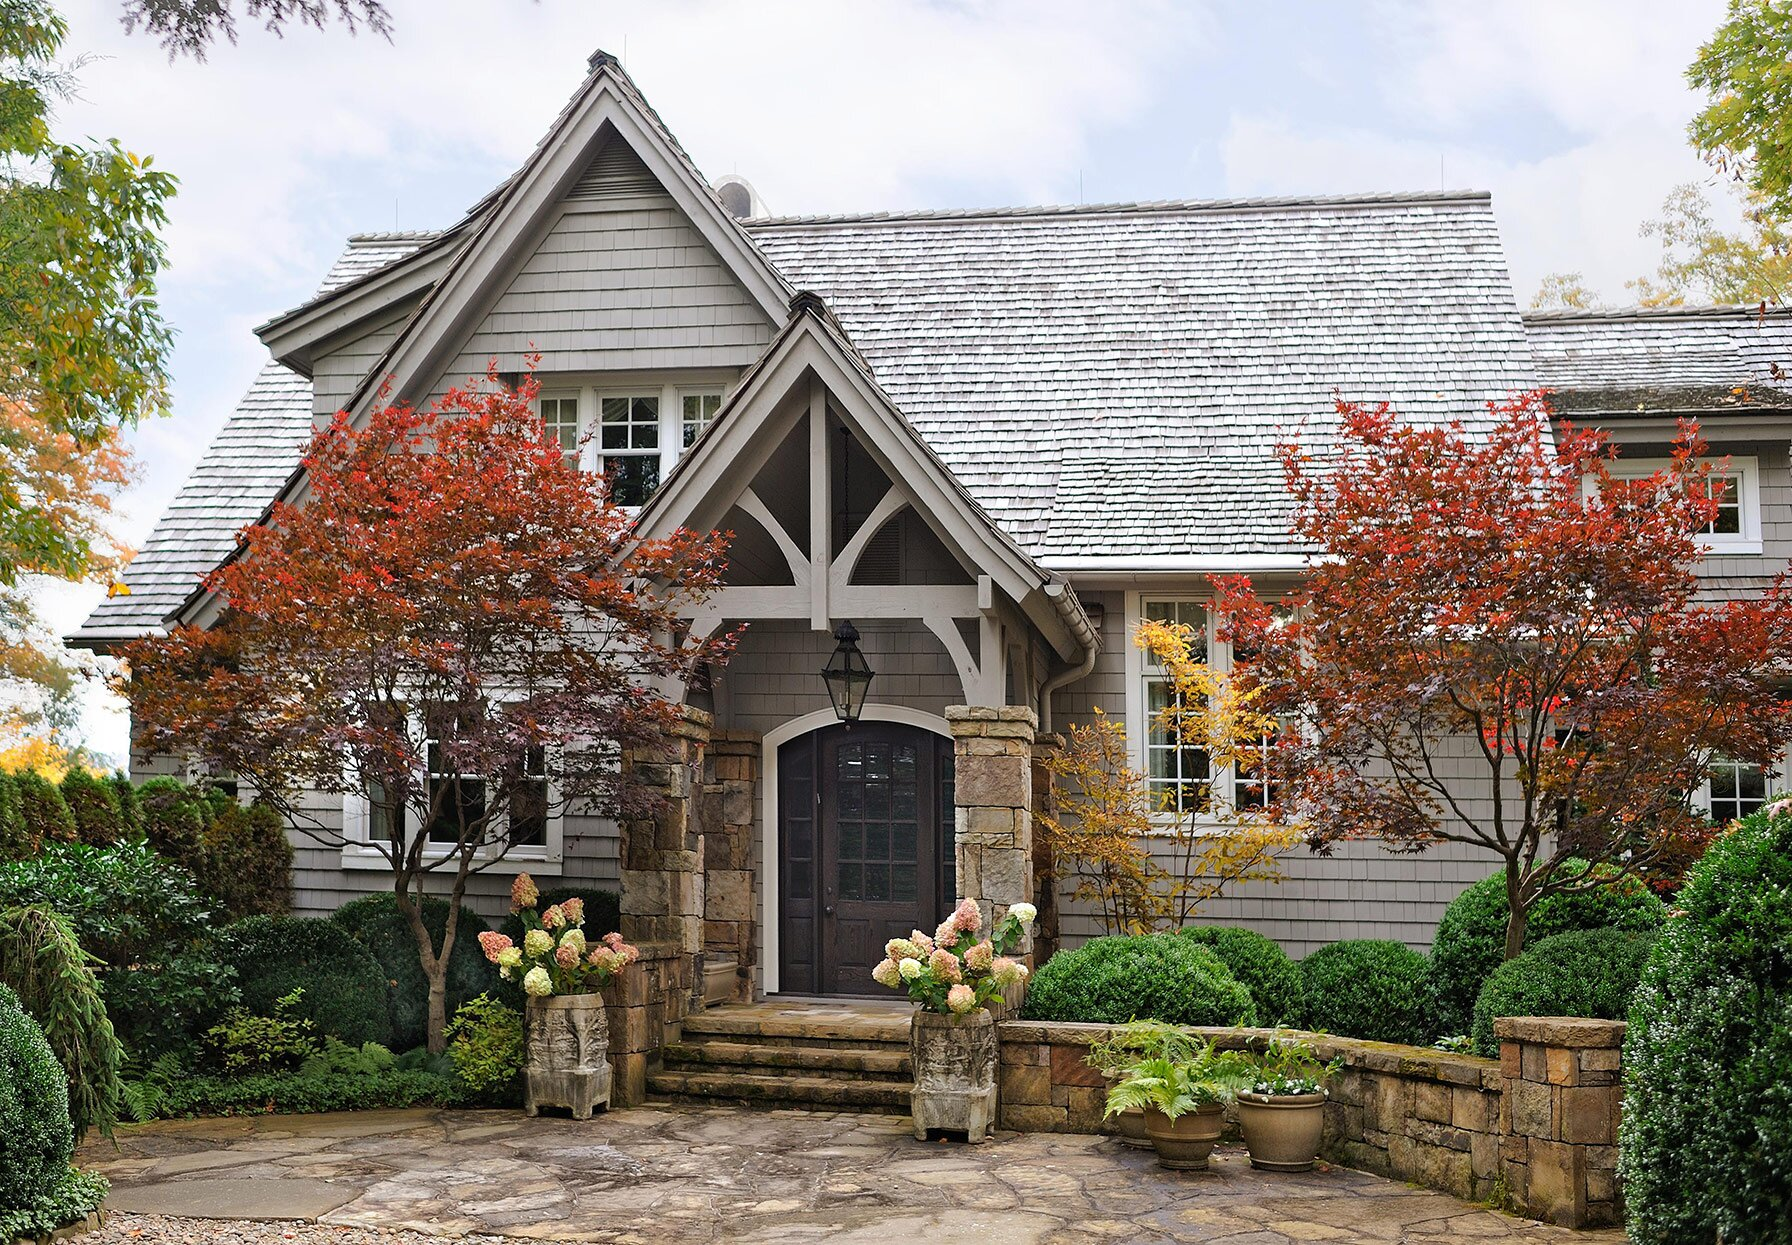 20 Craftsman Style Homes With Timeless Charm Better Homes Gardens